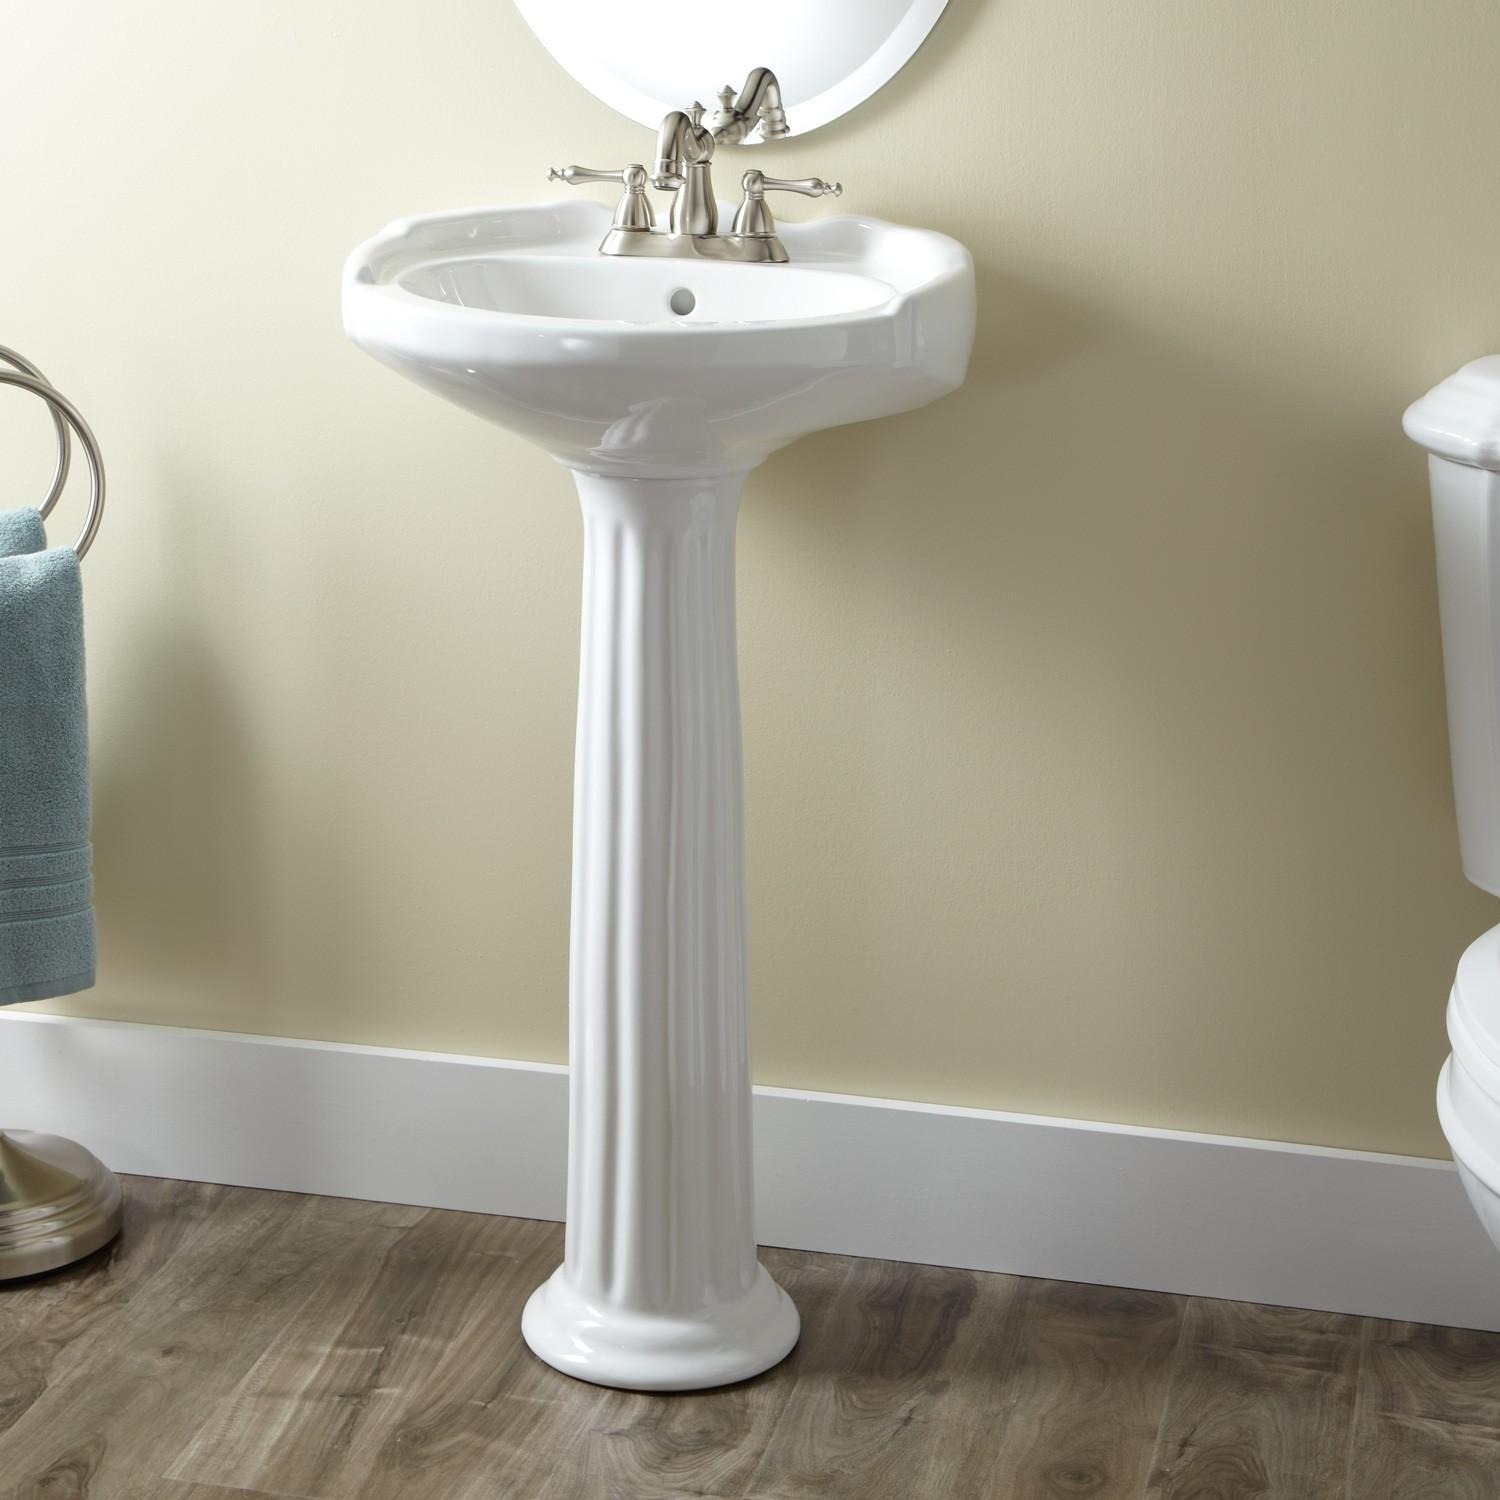 Victorian Medium Porcelain Pedestal Sink Bathroom